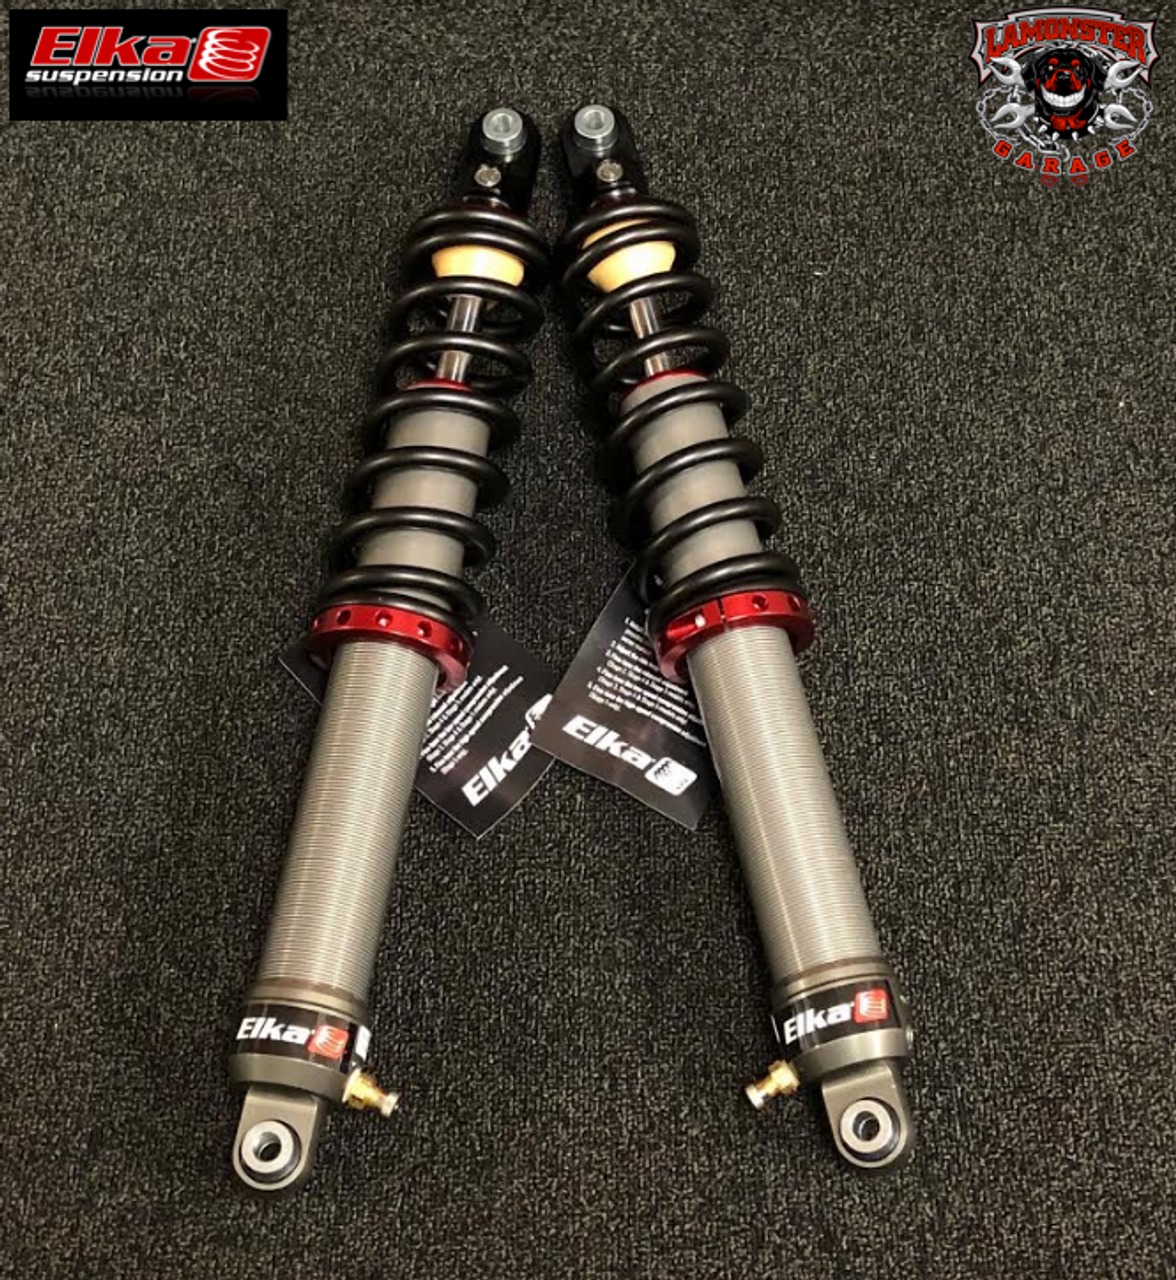 Stage 2 Elka Shocks (Front set) F3 / F3-S / F3-T / F3-LTD